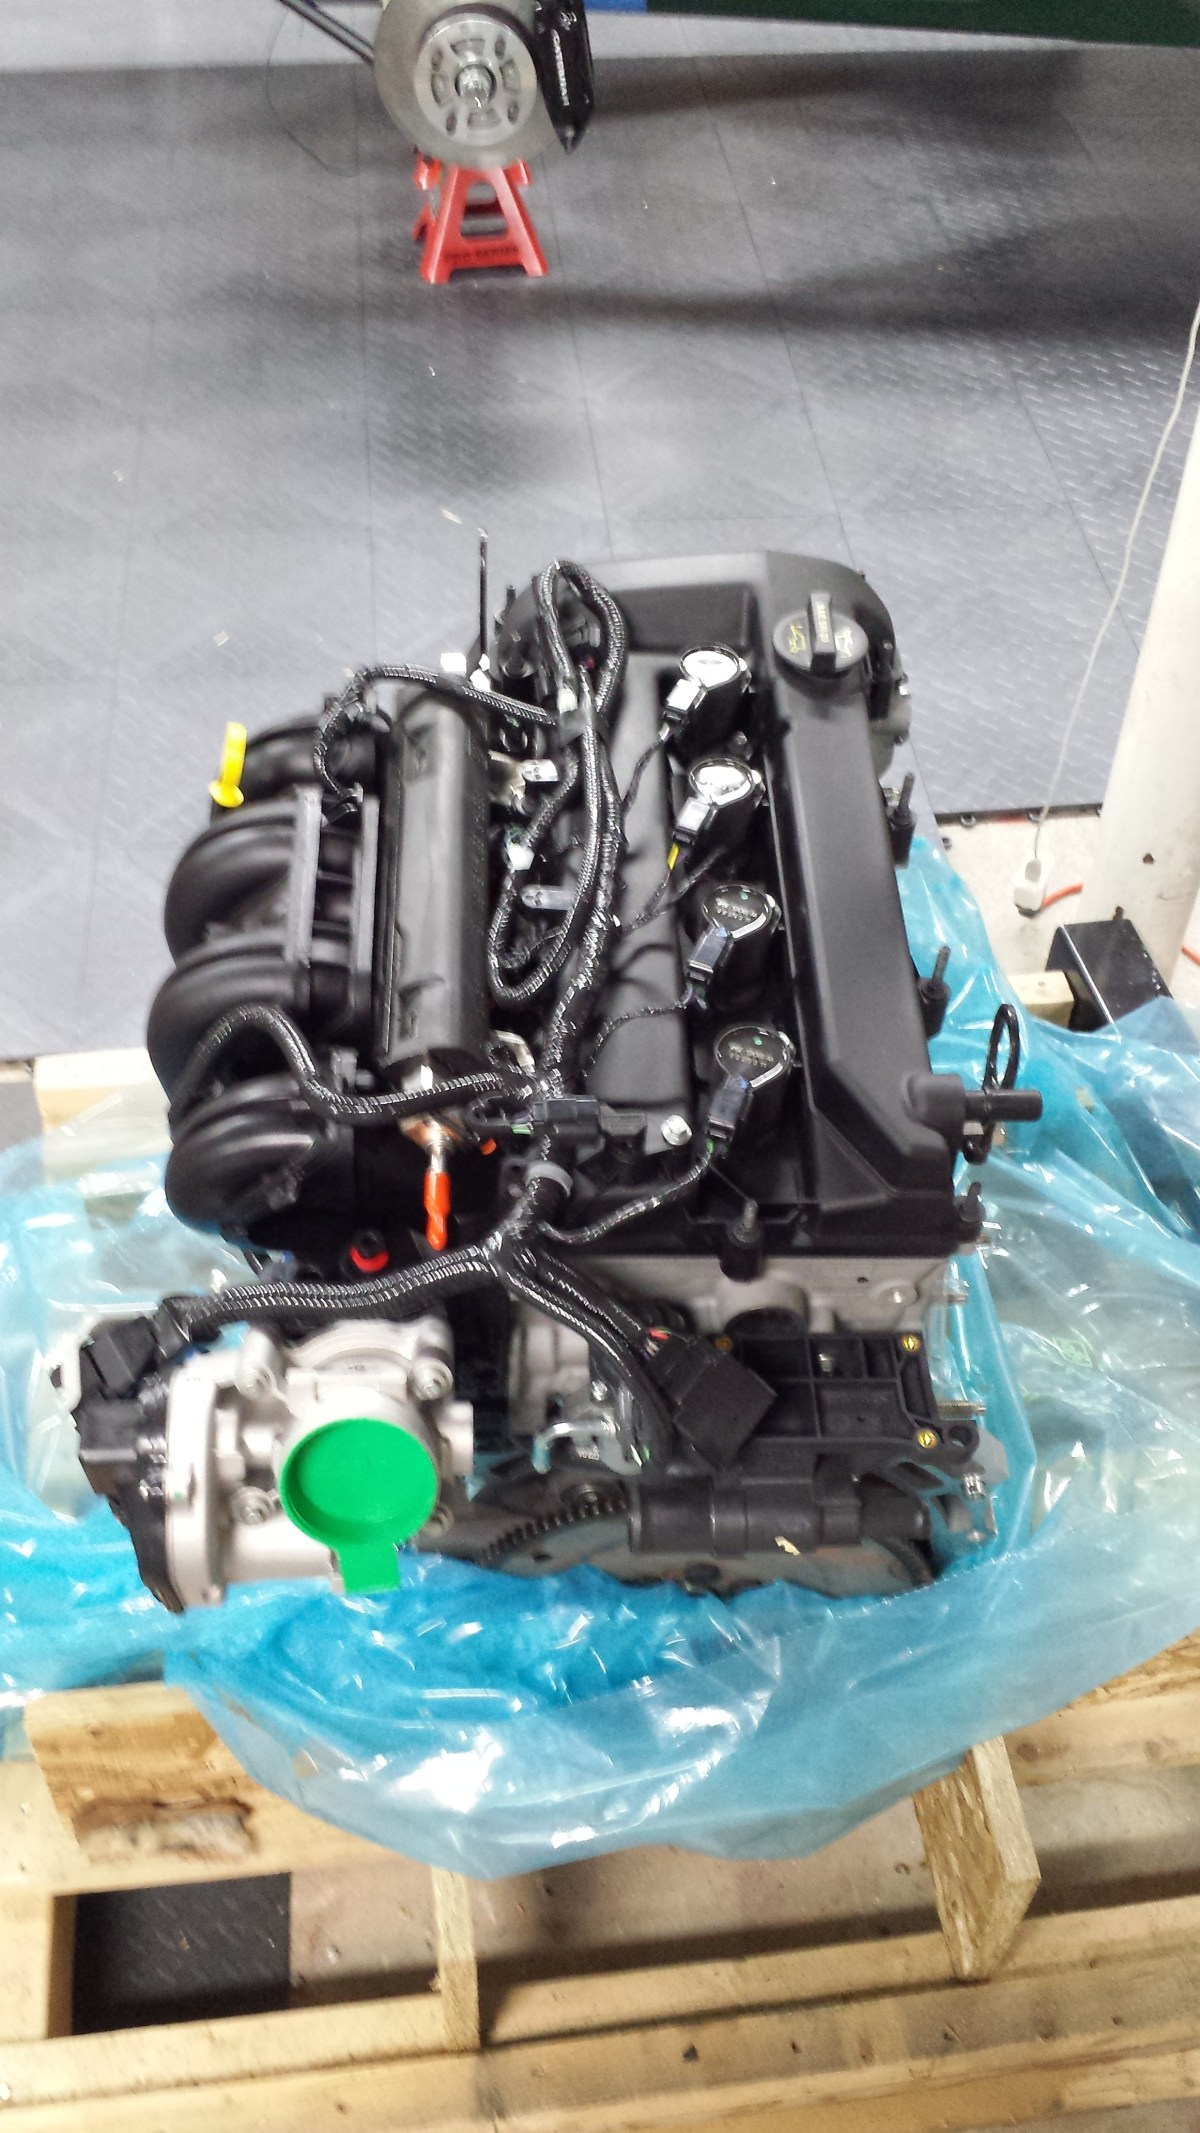 Engine unwrapped